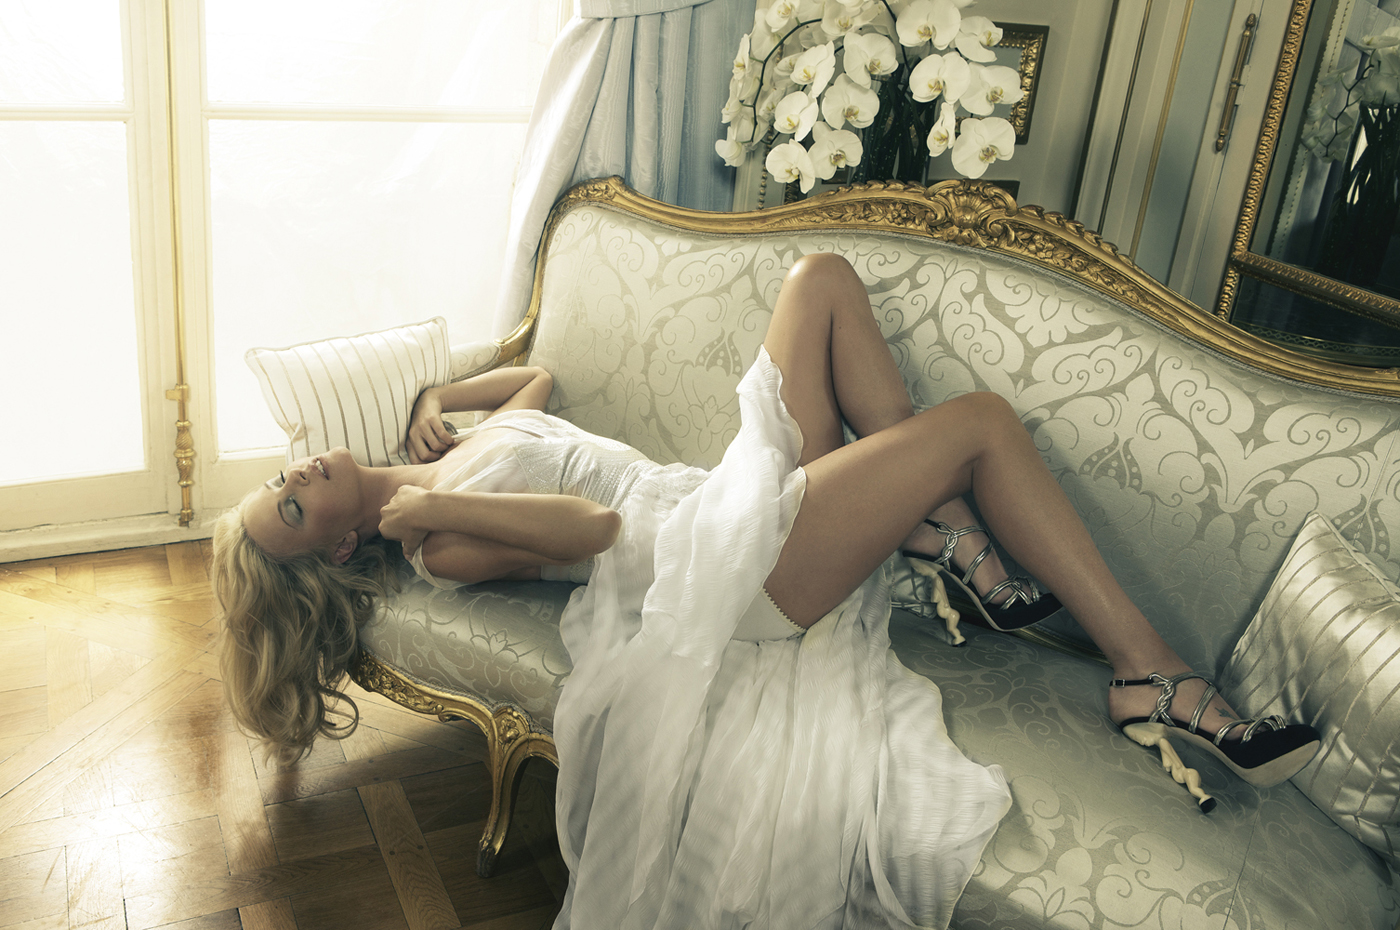 Charlize Theron photoshoot wearing a white gown, lying on a sofa